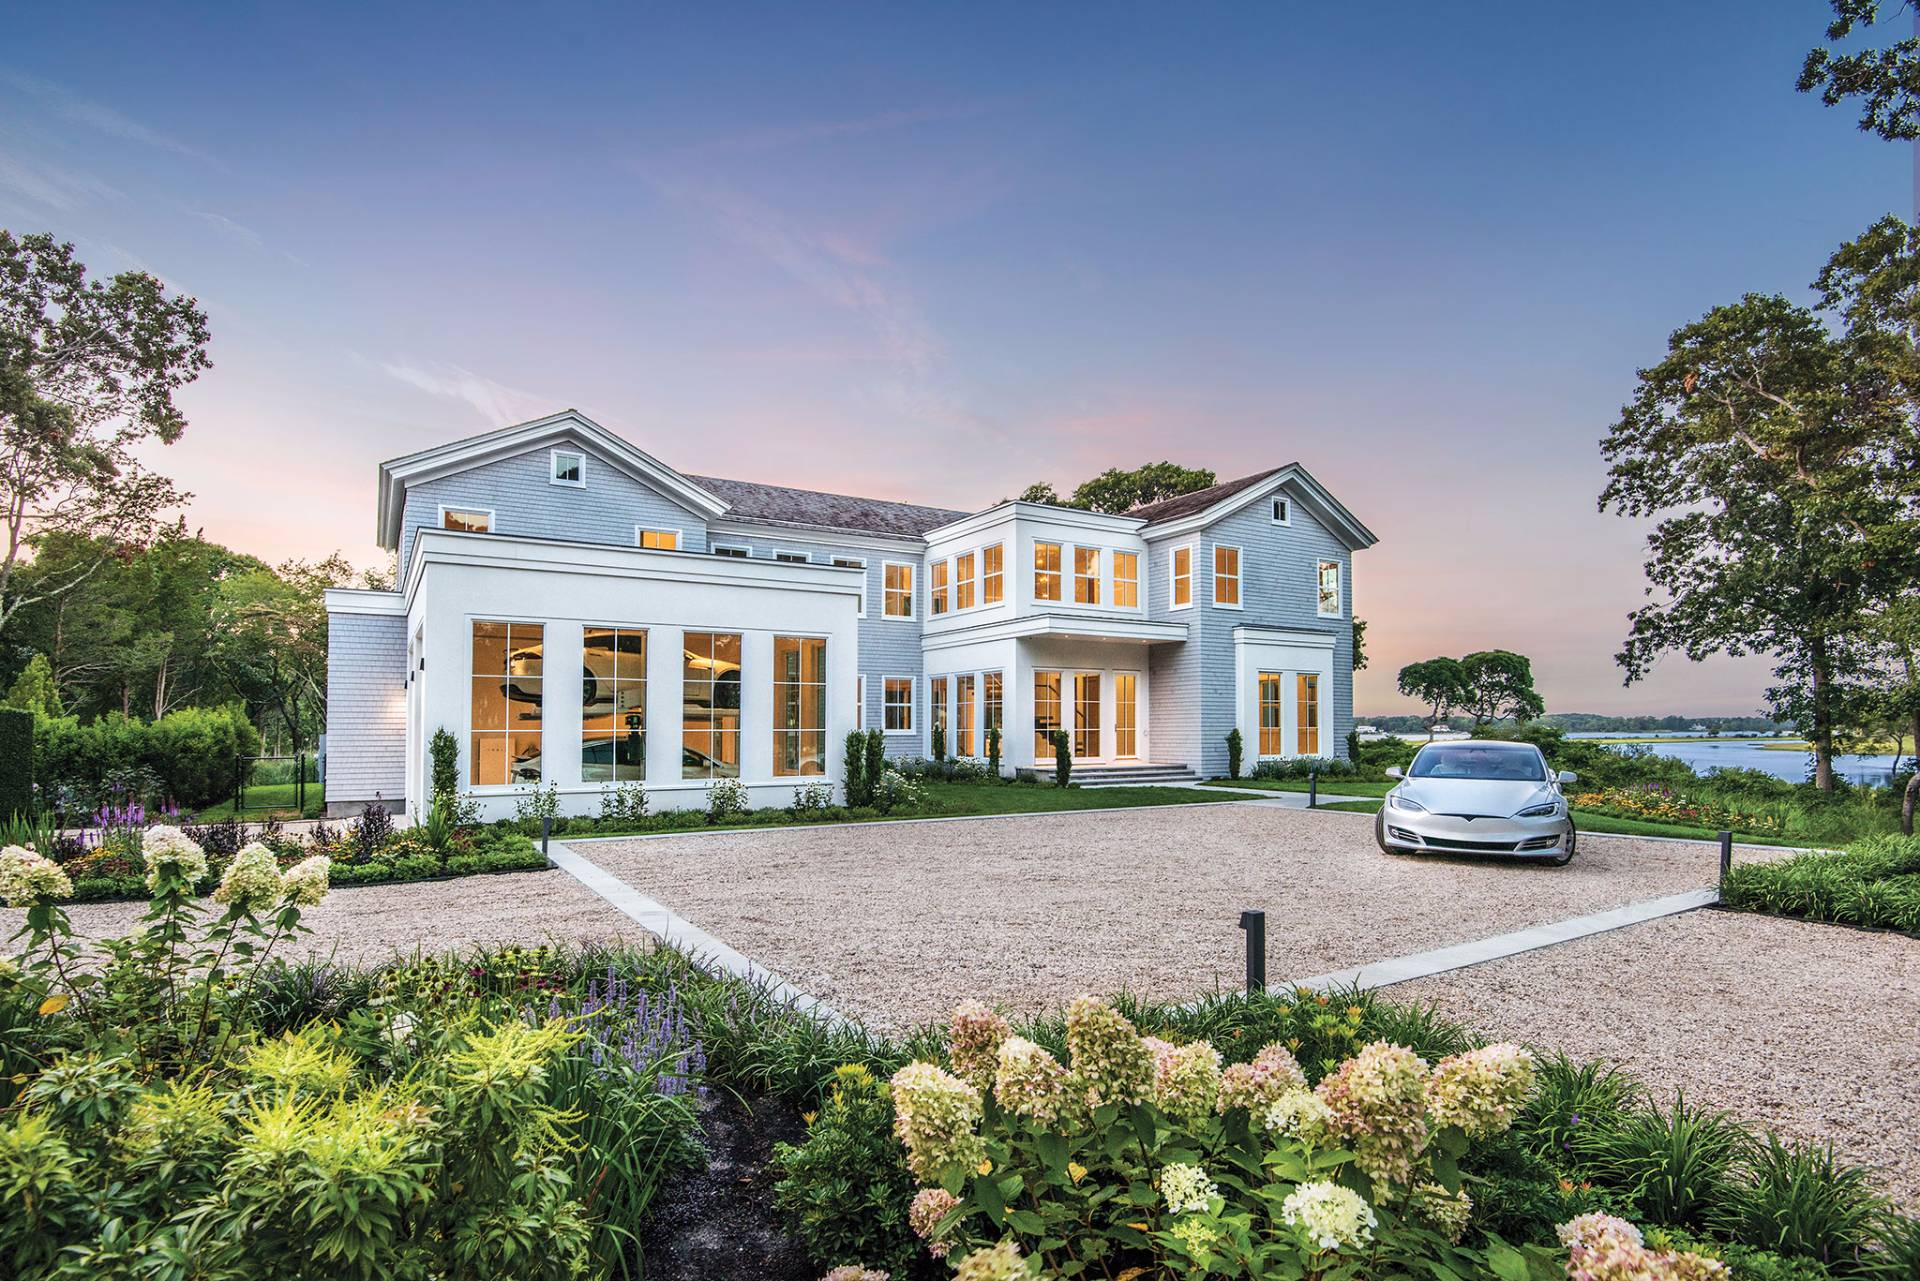 Single Family Home for Sale at Seaponack Point A New Modern Lifestyle 14 Seaponack Drive, Sag Harbor, New York